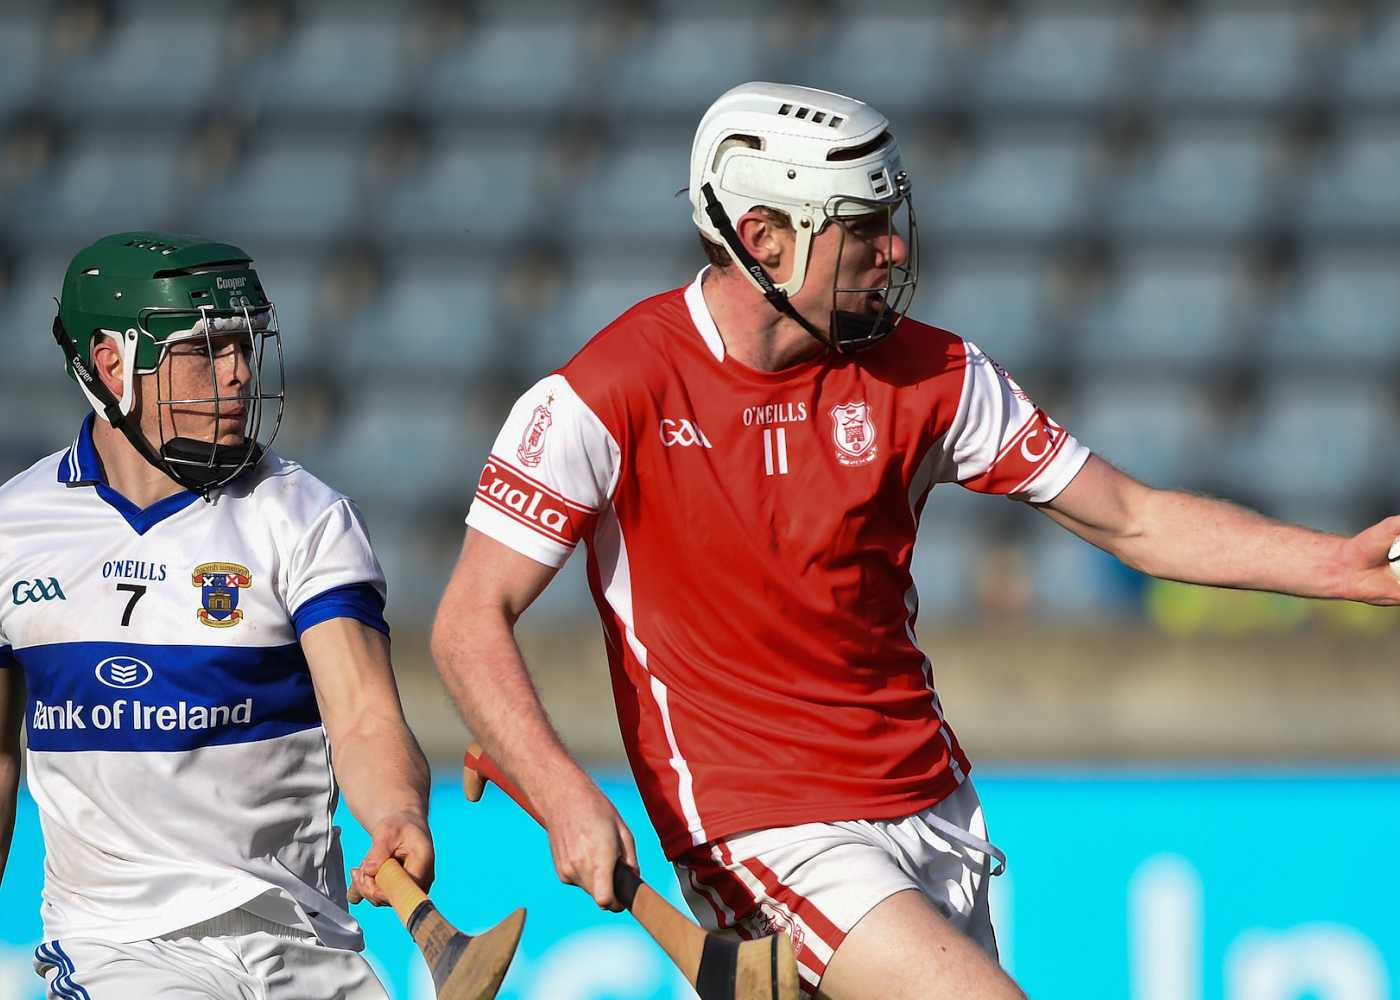 AHL 1 Match Report: St. Vincents v Cuala